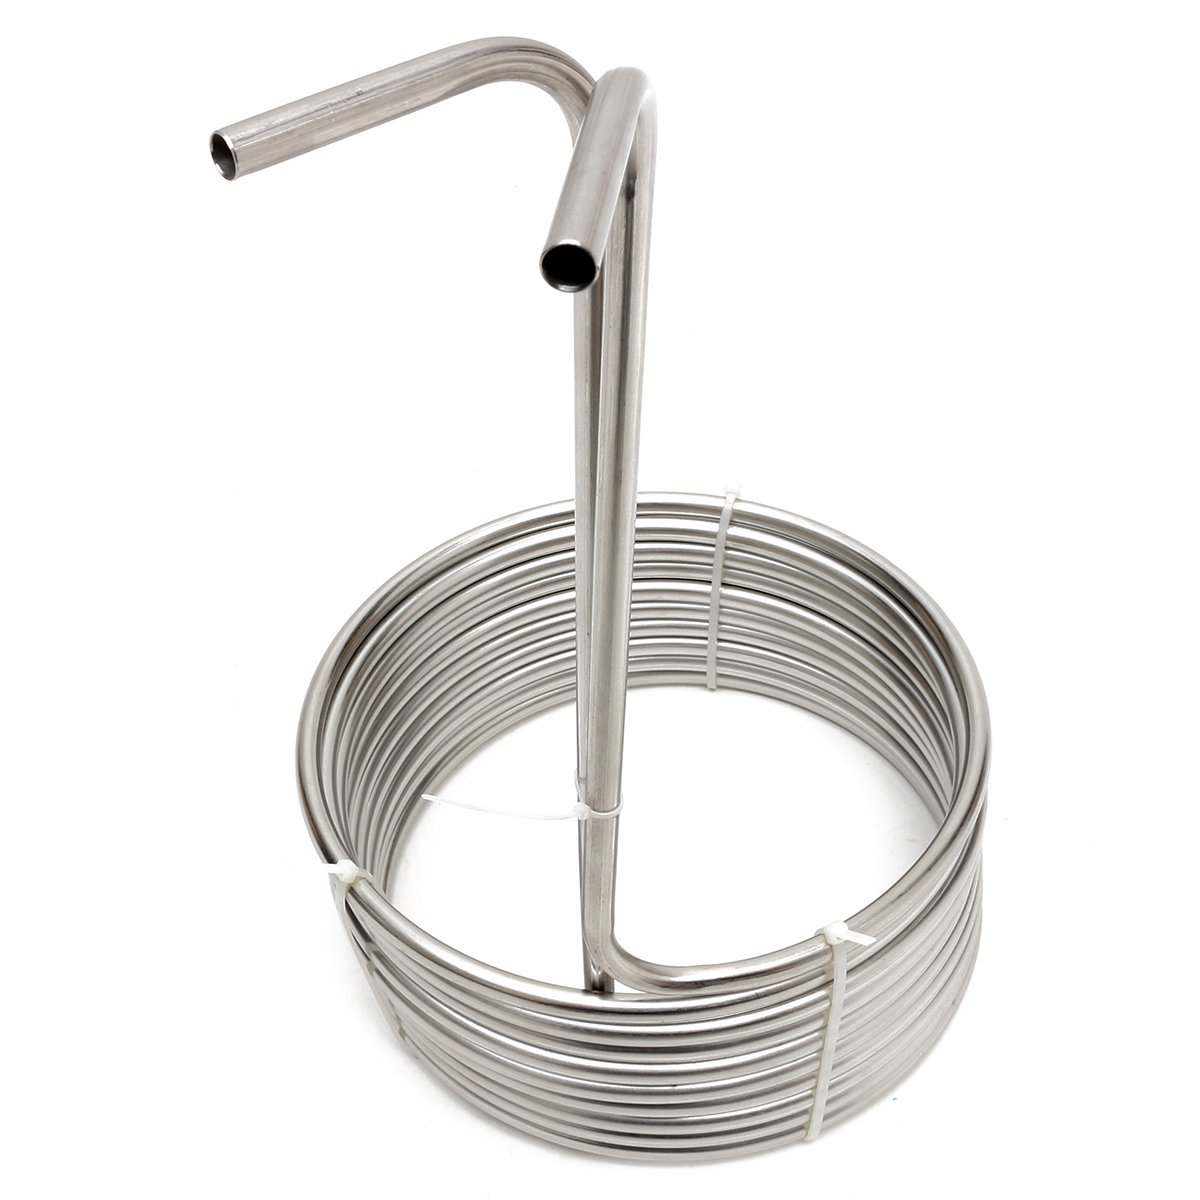 Cooling Coil Pipe, SENREAL Super Efficient Stainless Steel Cooling Coil Home Brewing Wort Chiller Pipe-#1 by SENREAL (Image #3)